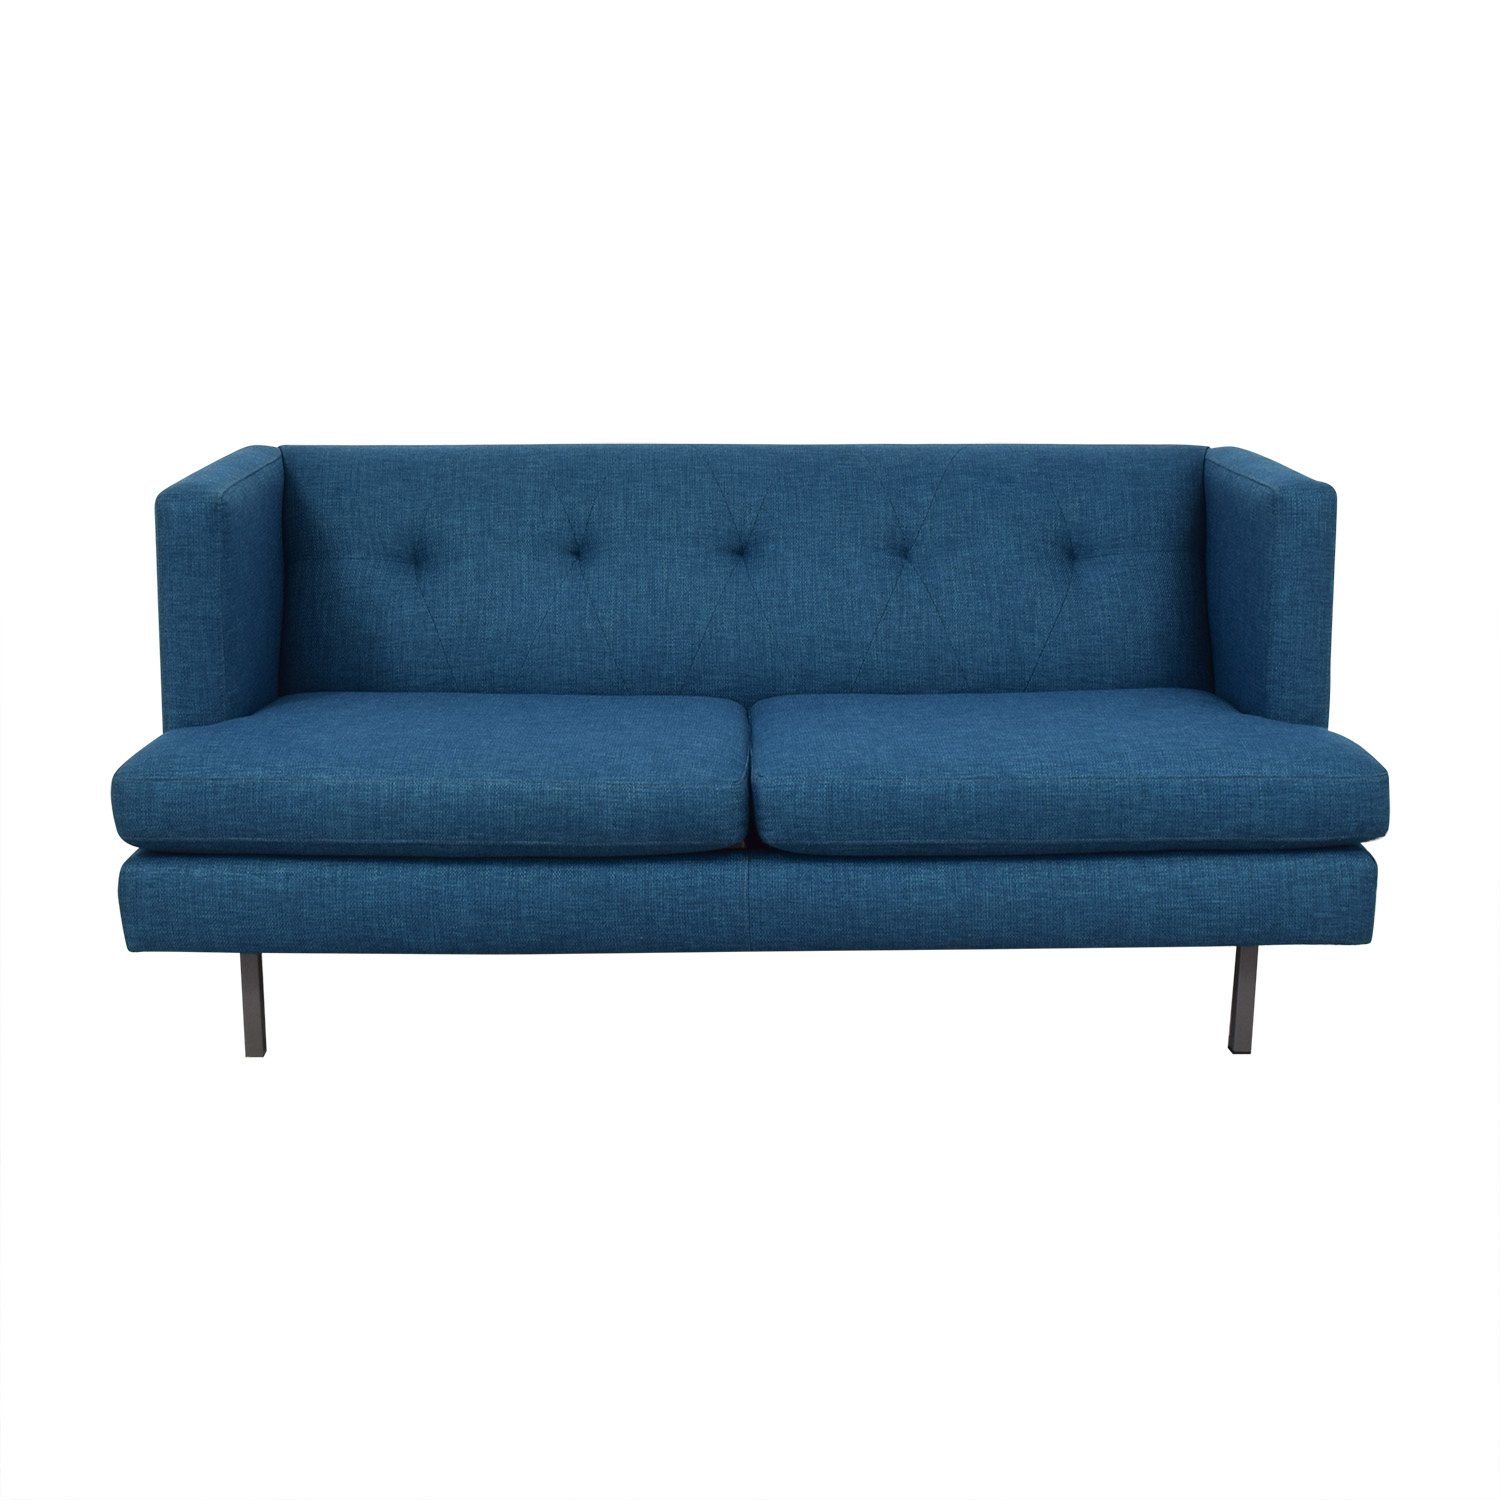 CB2 CB2 Avec Apartment Sofa price